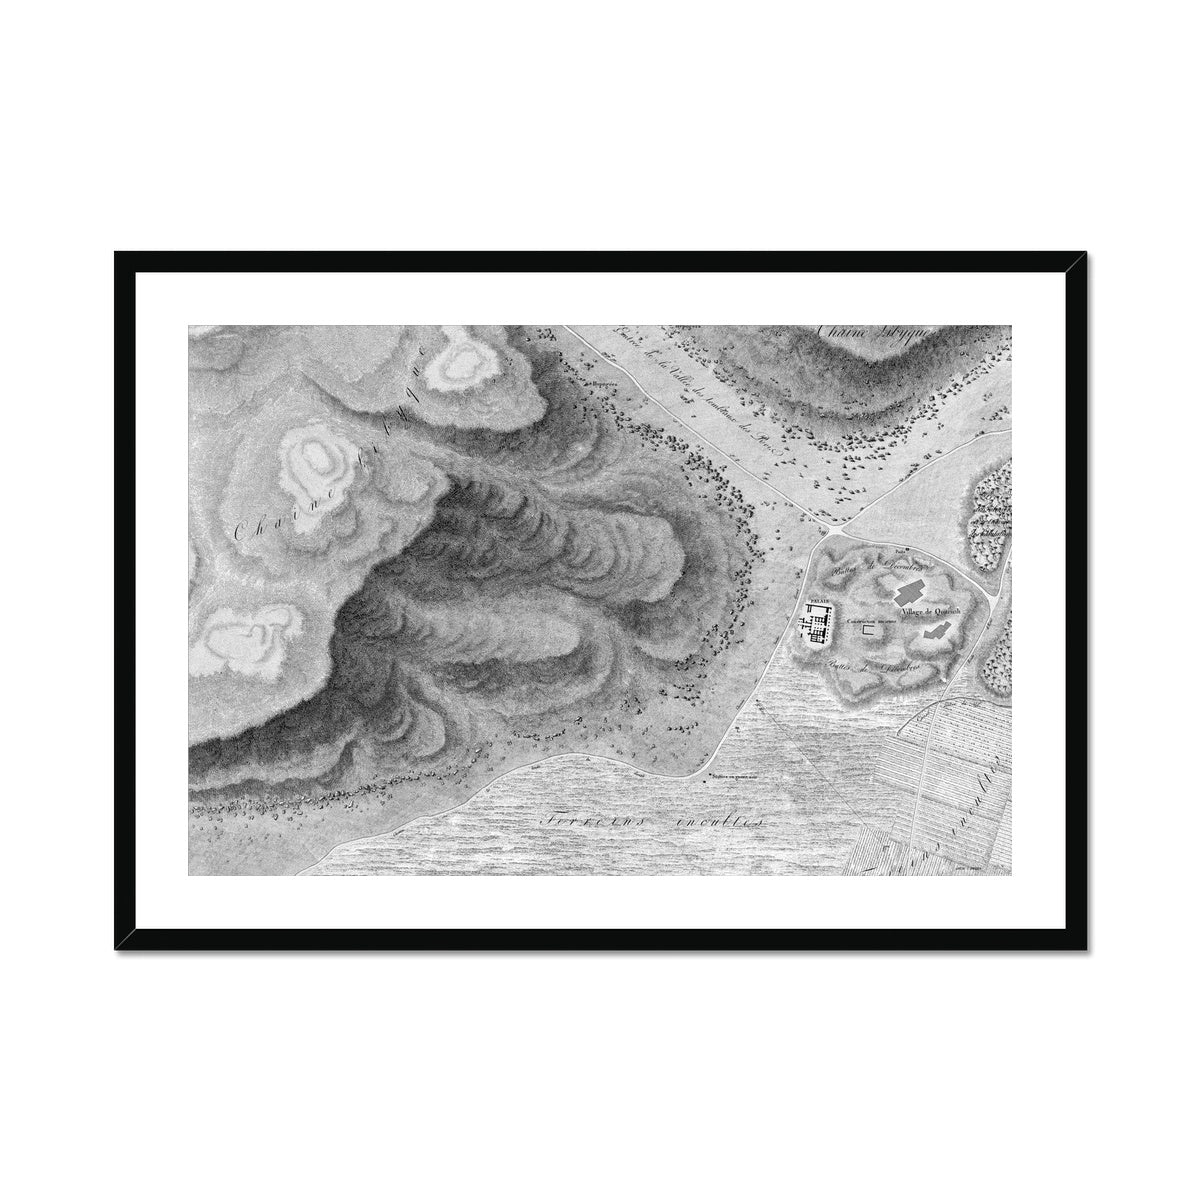 Topographic Map of the Ruins - Qournah - Thebes Egypt -  Framed & Mounted Print